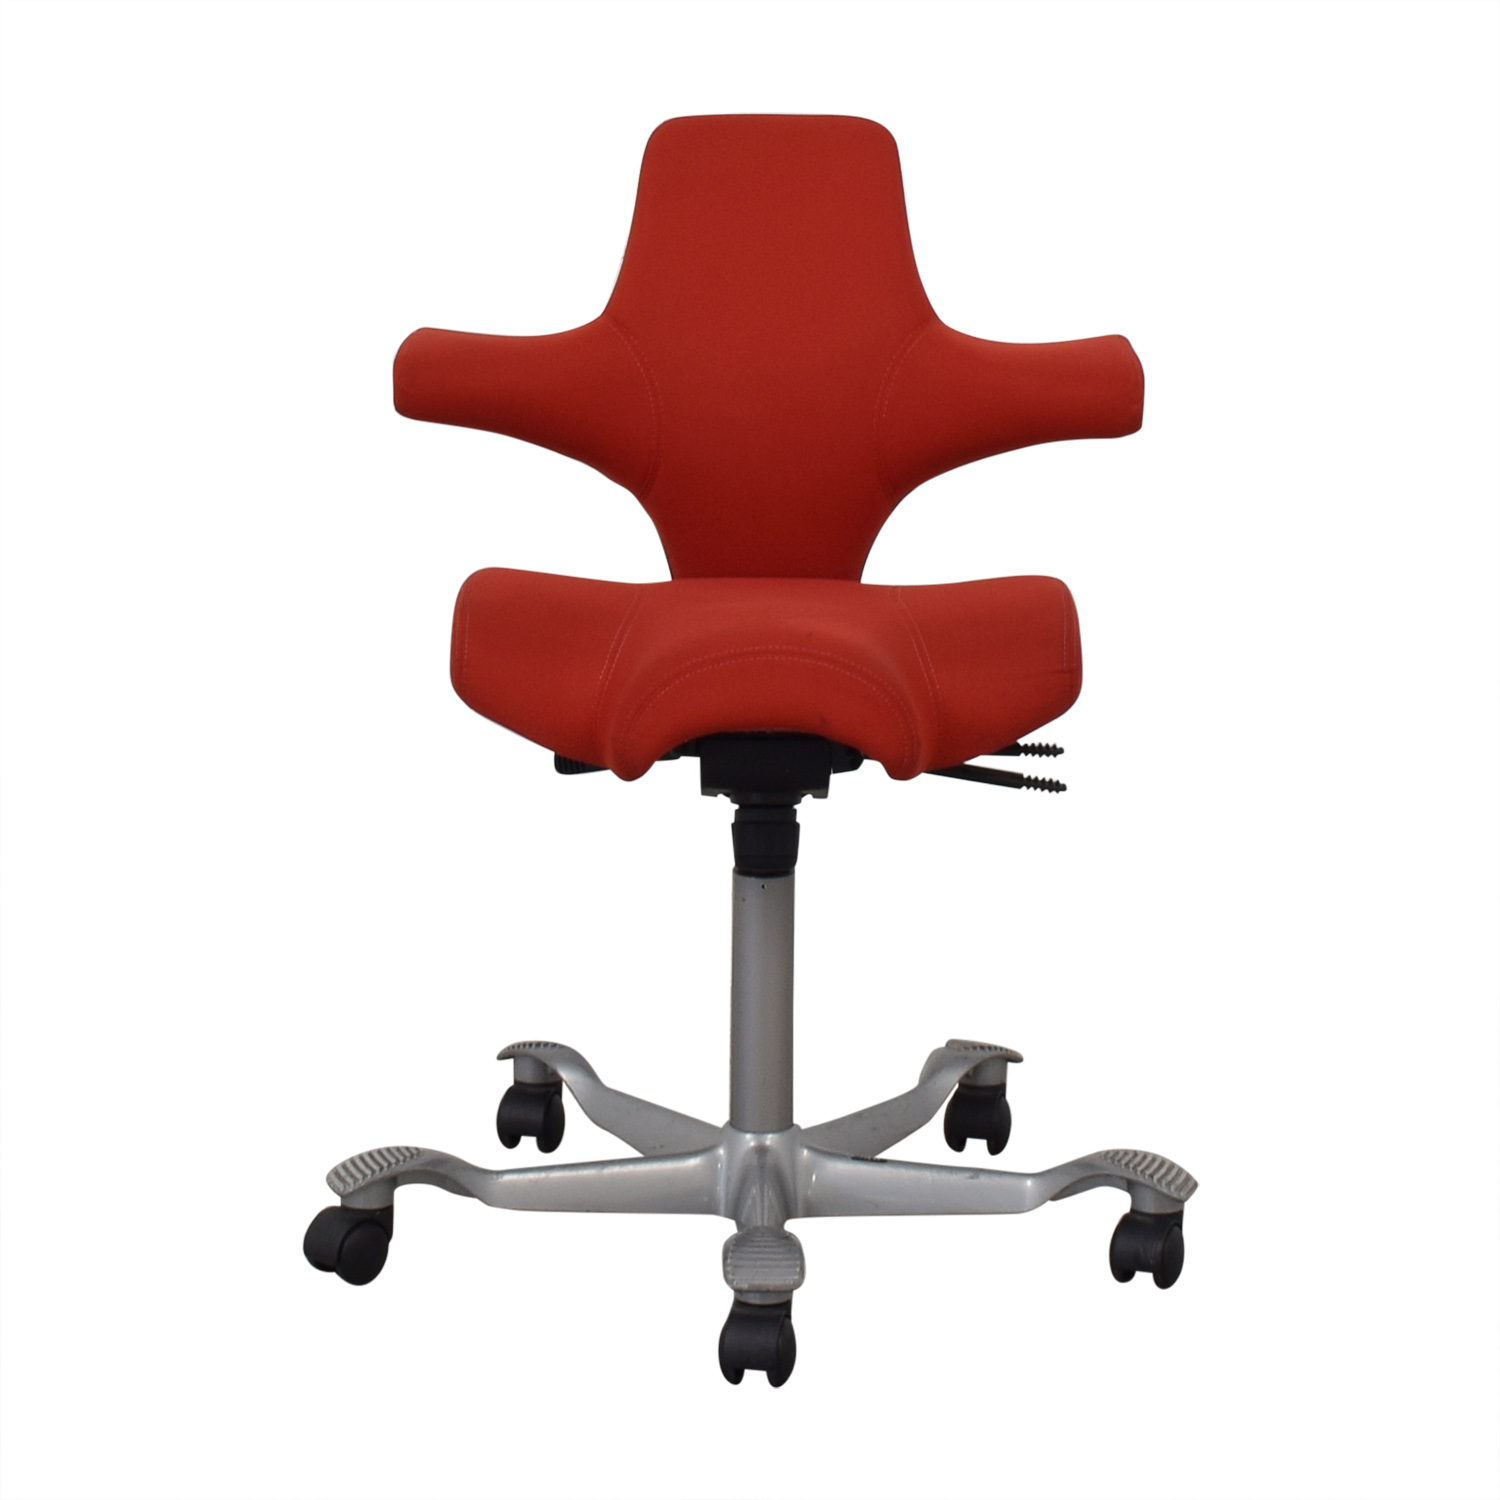 HÅG Capisco Office Chair sale